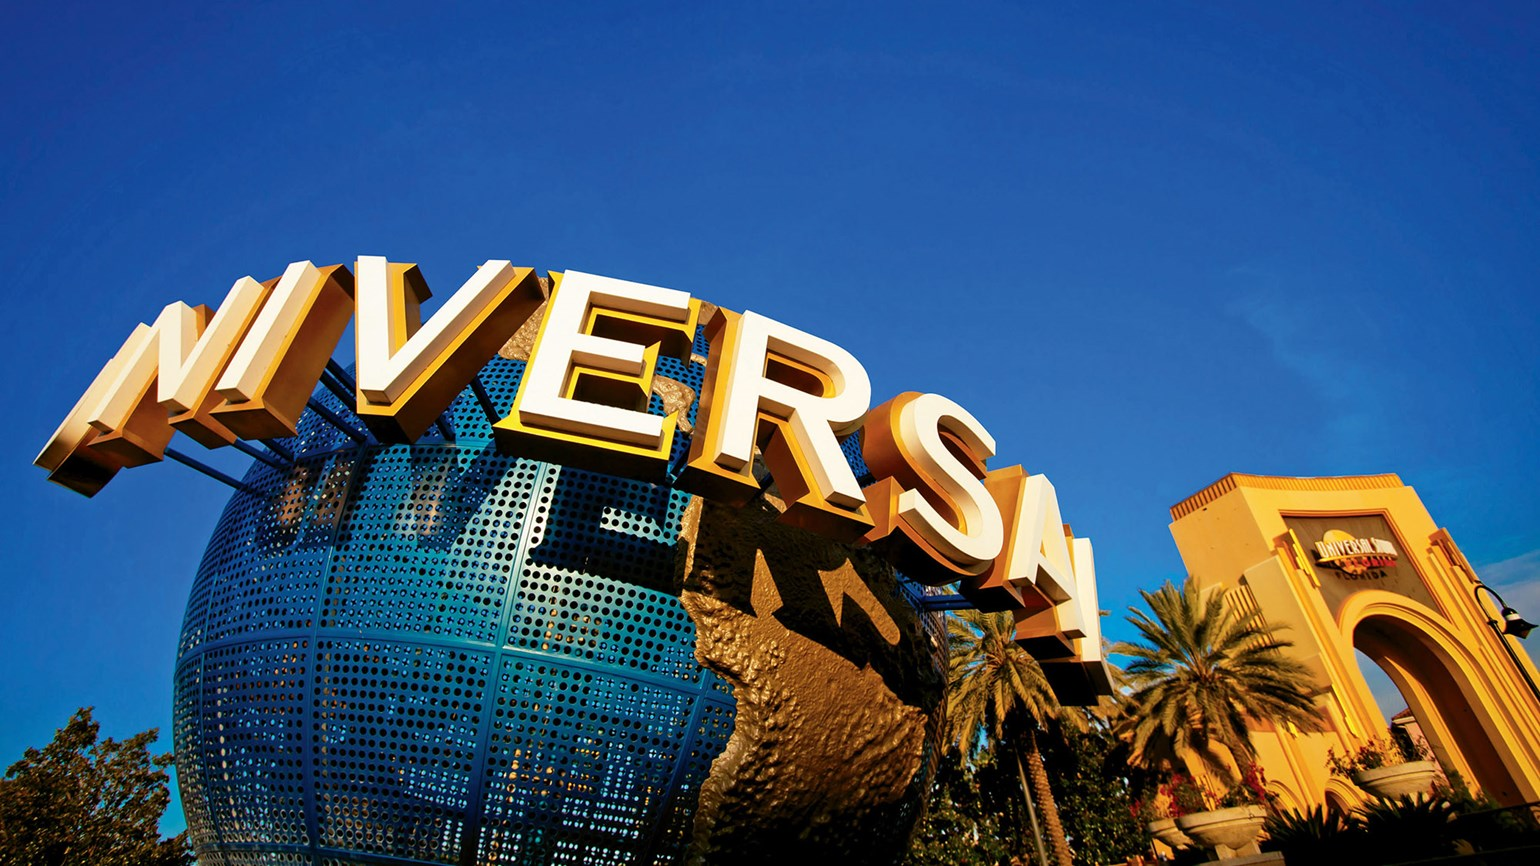 Universal theme parks' numbers tumble in Q2